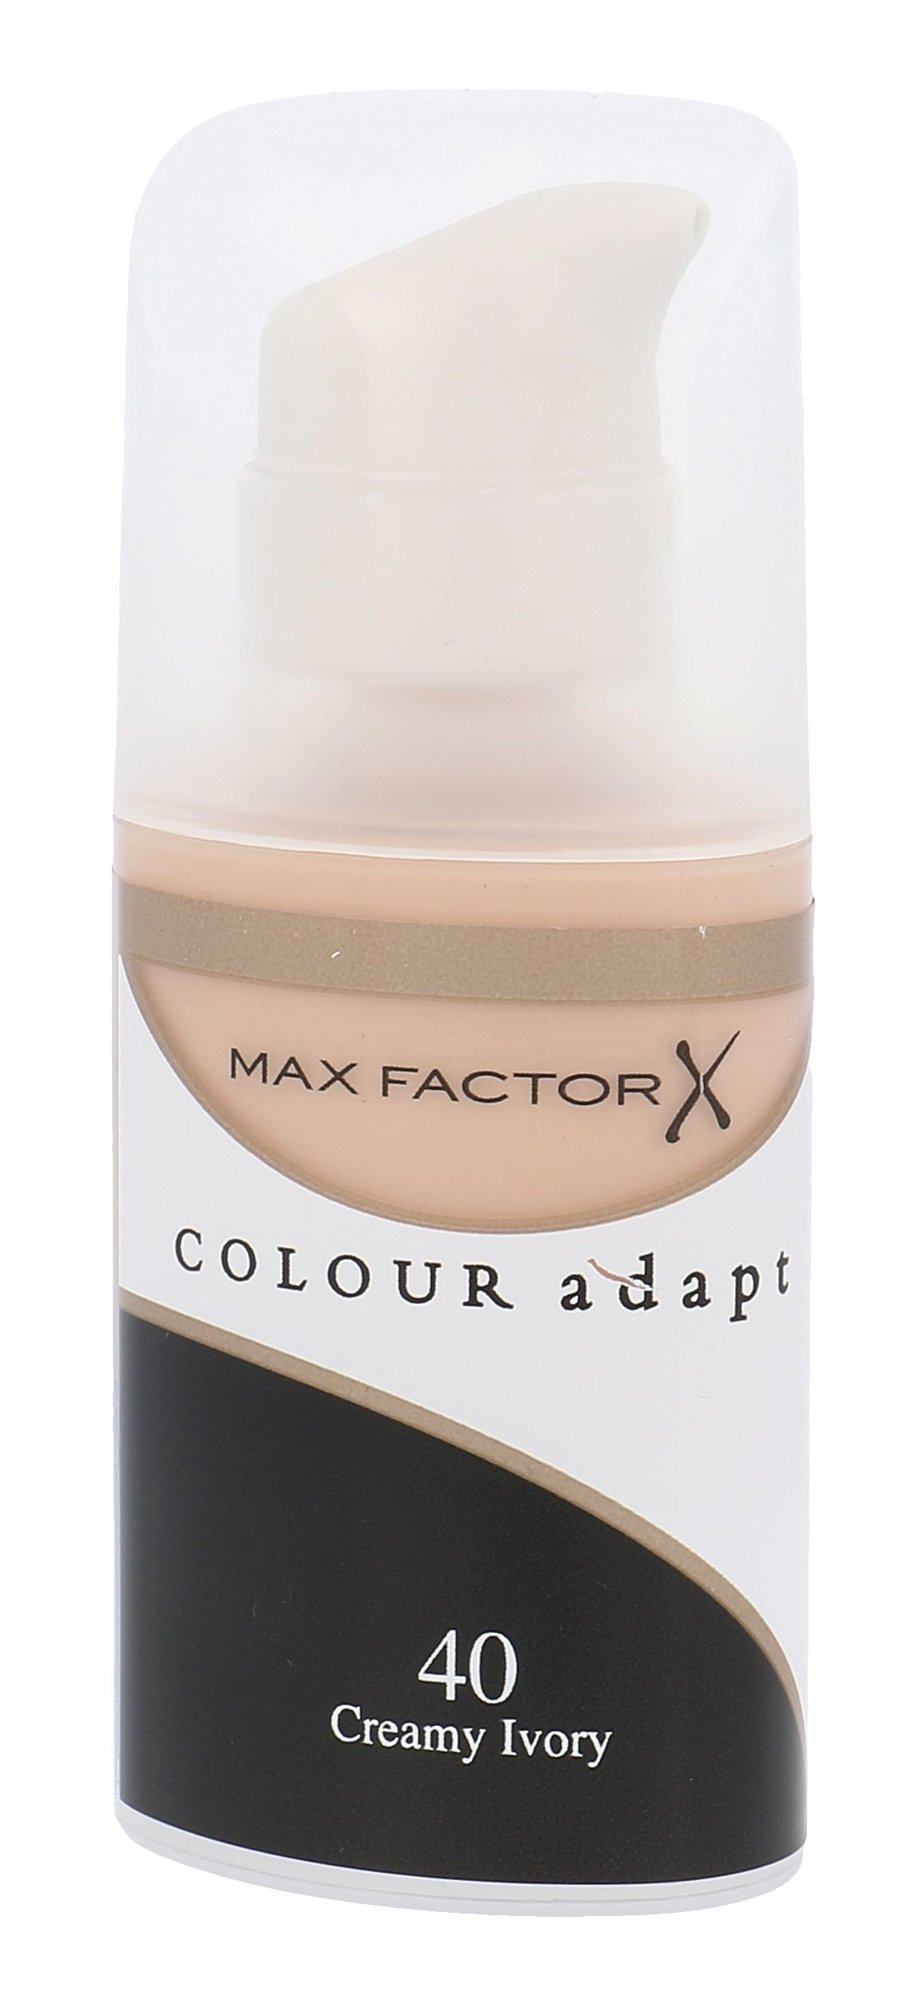 Max Factor Colour Adapt Cosmetic 34ml 40 Creamy Ivory